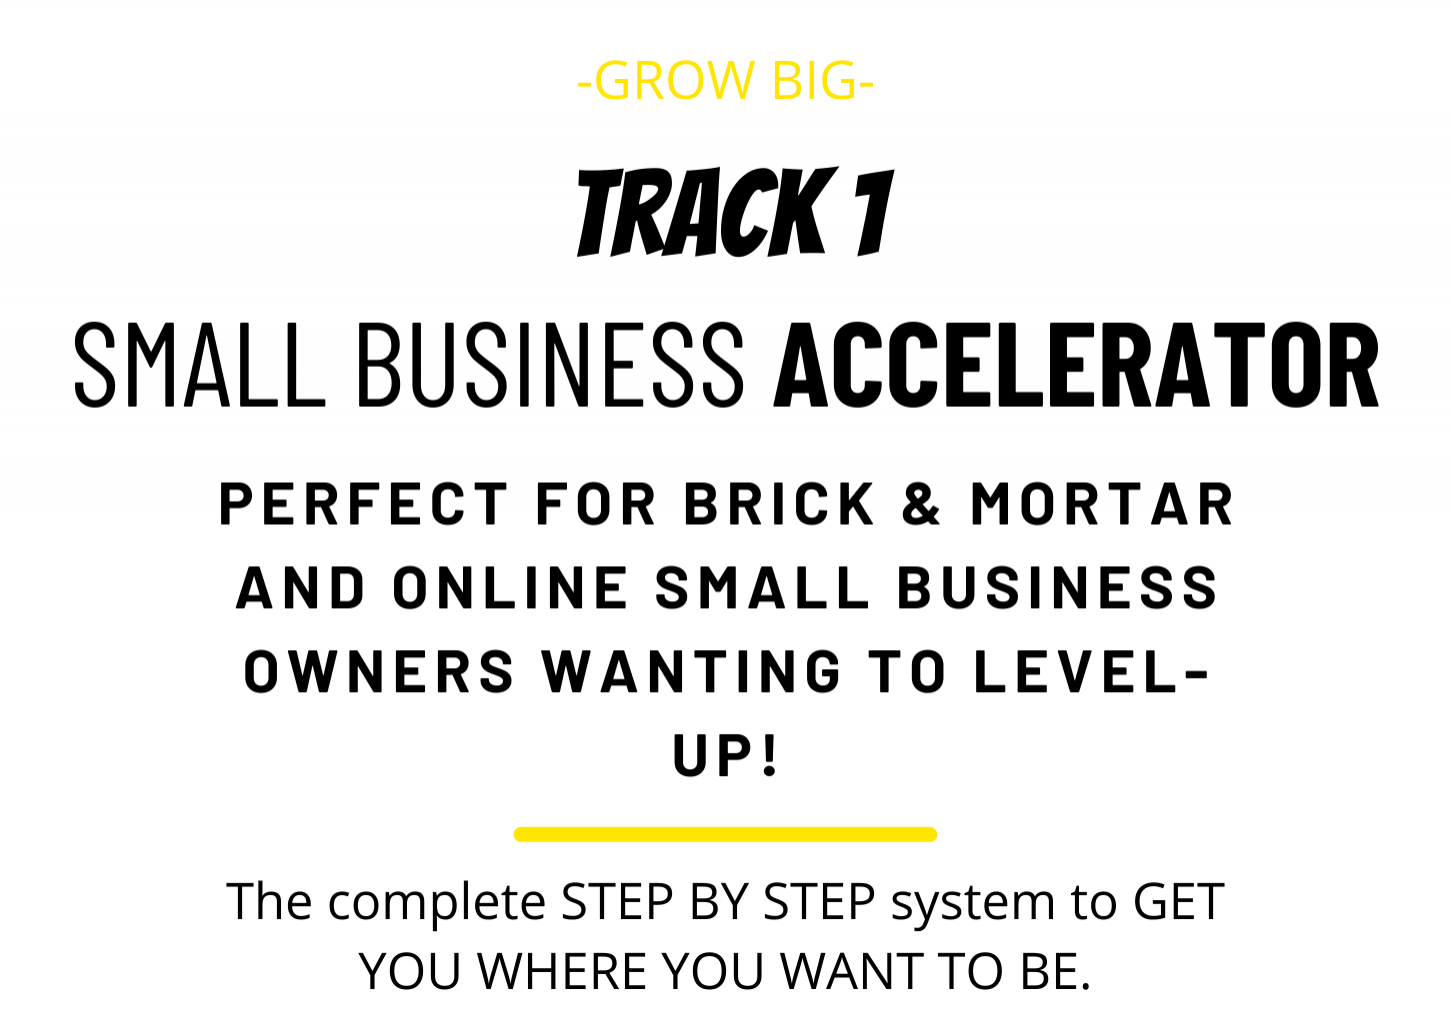 SMALL BUSINESS ACCELERATOR (1)